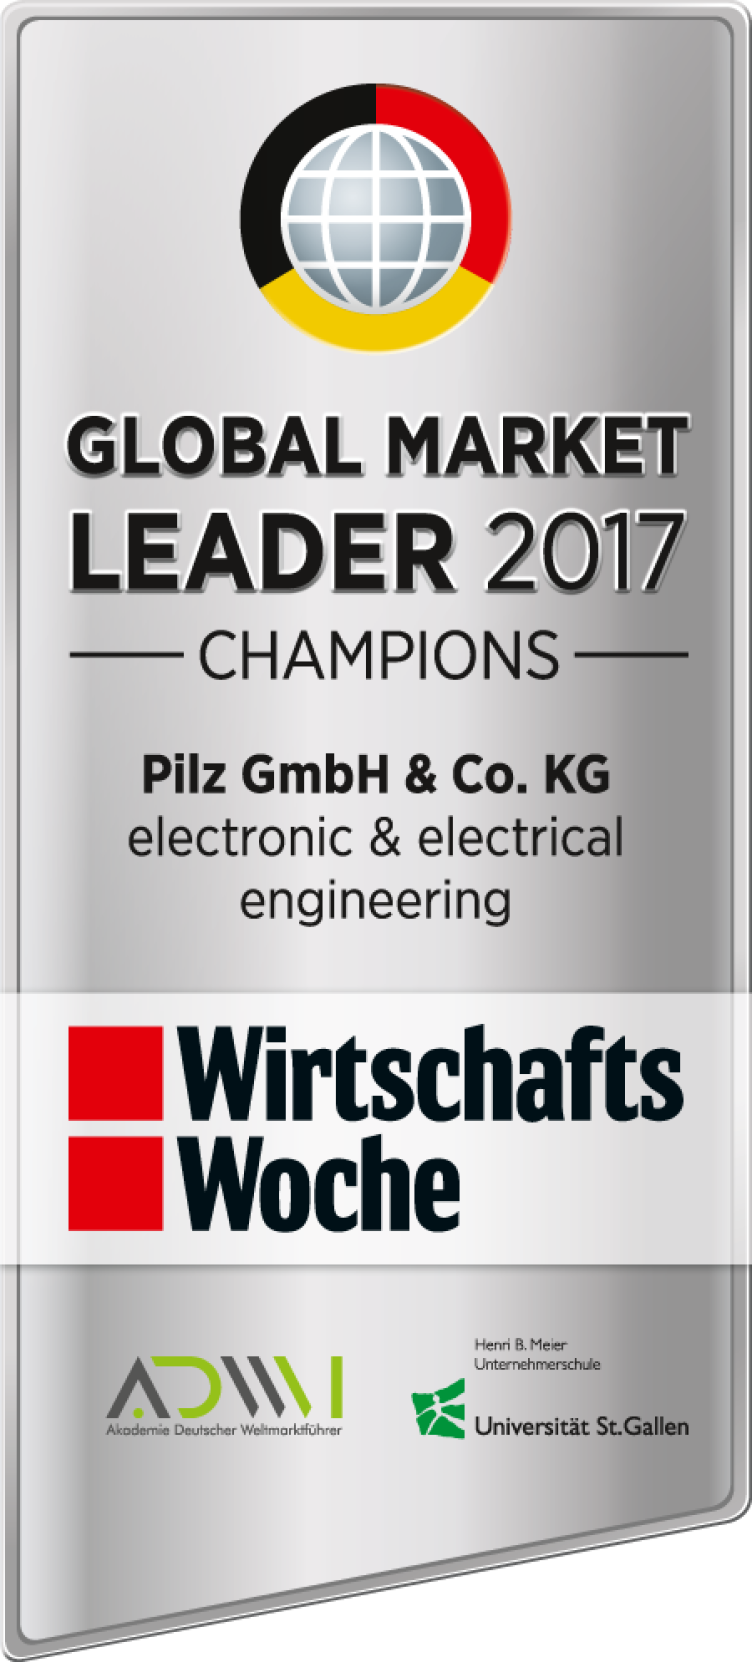 Pilz is world market leader 2017